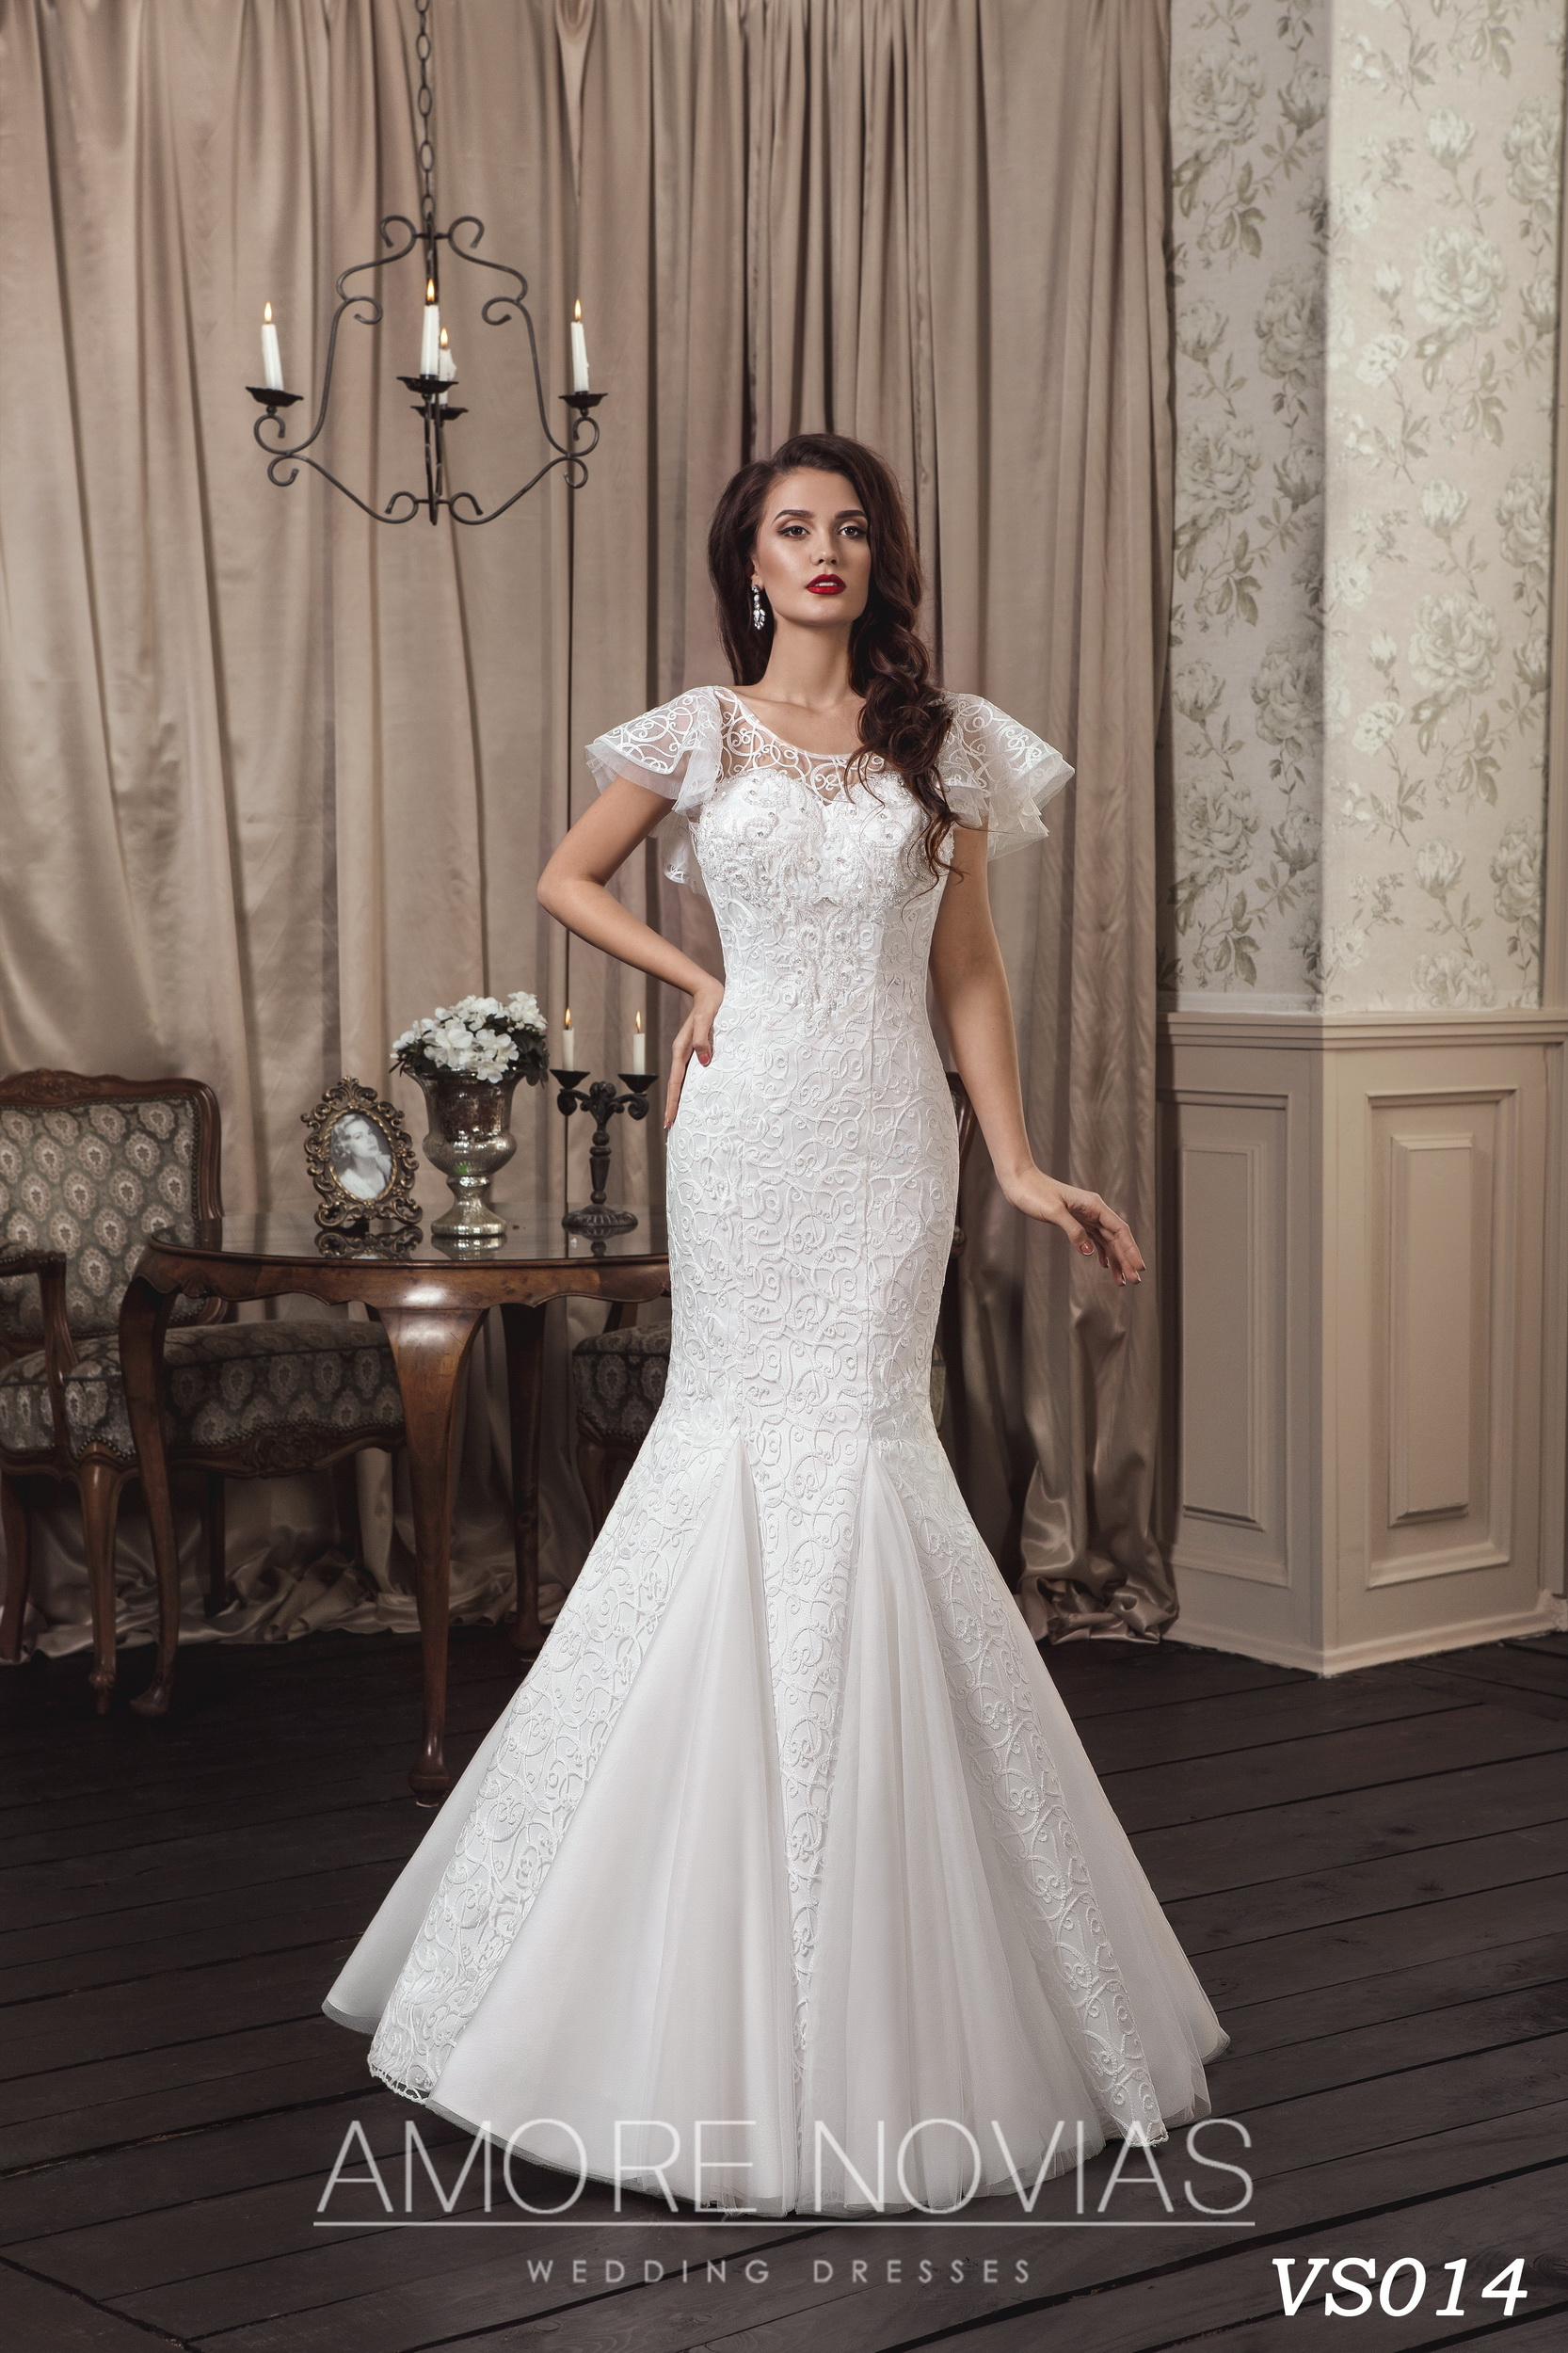 https://amore-novias.com/images/stories/virtuemart/product/vs014.jpg